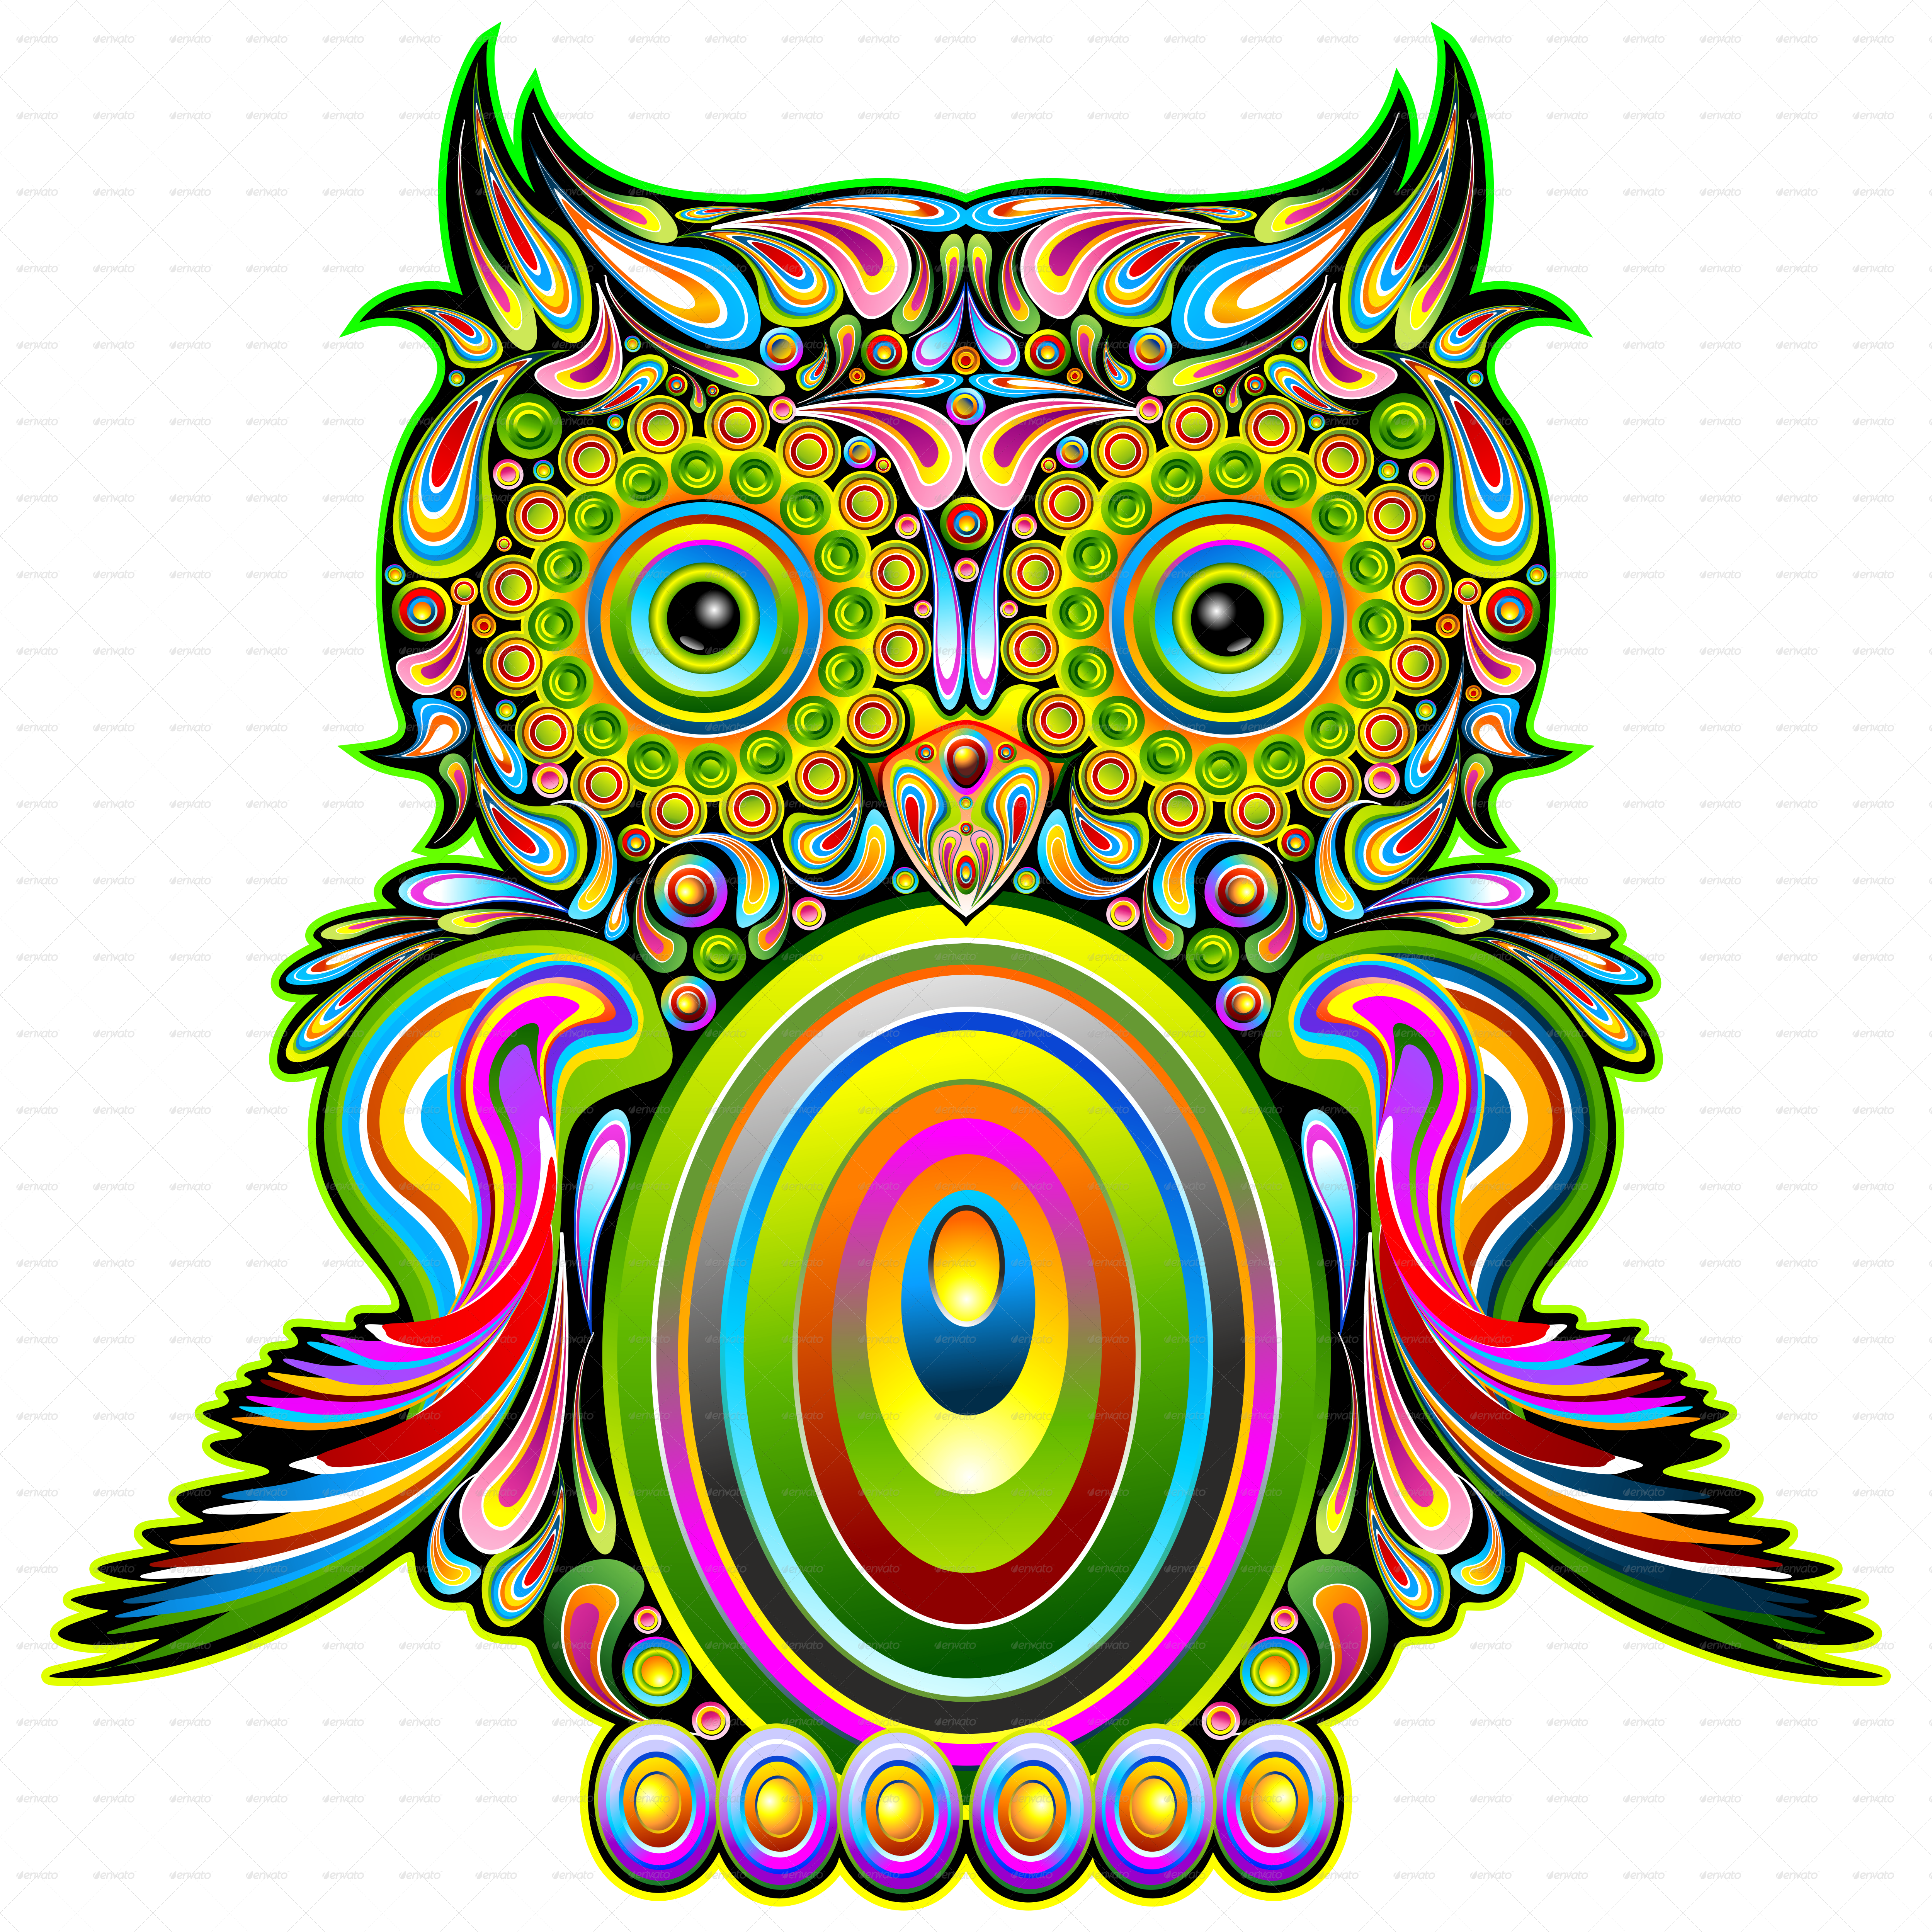 graphic royalty free download Owl Psychedelic Pop Art by Bluedarkat